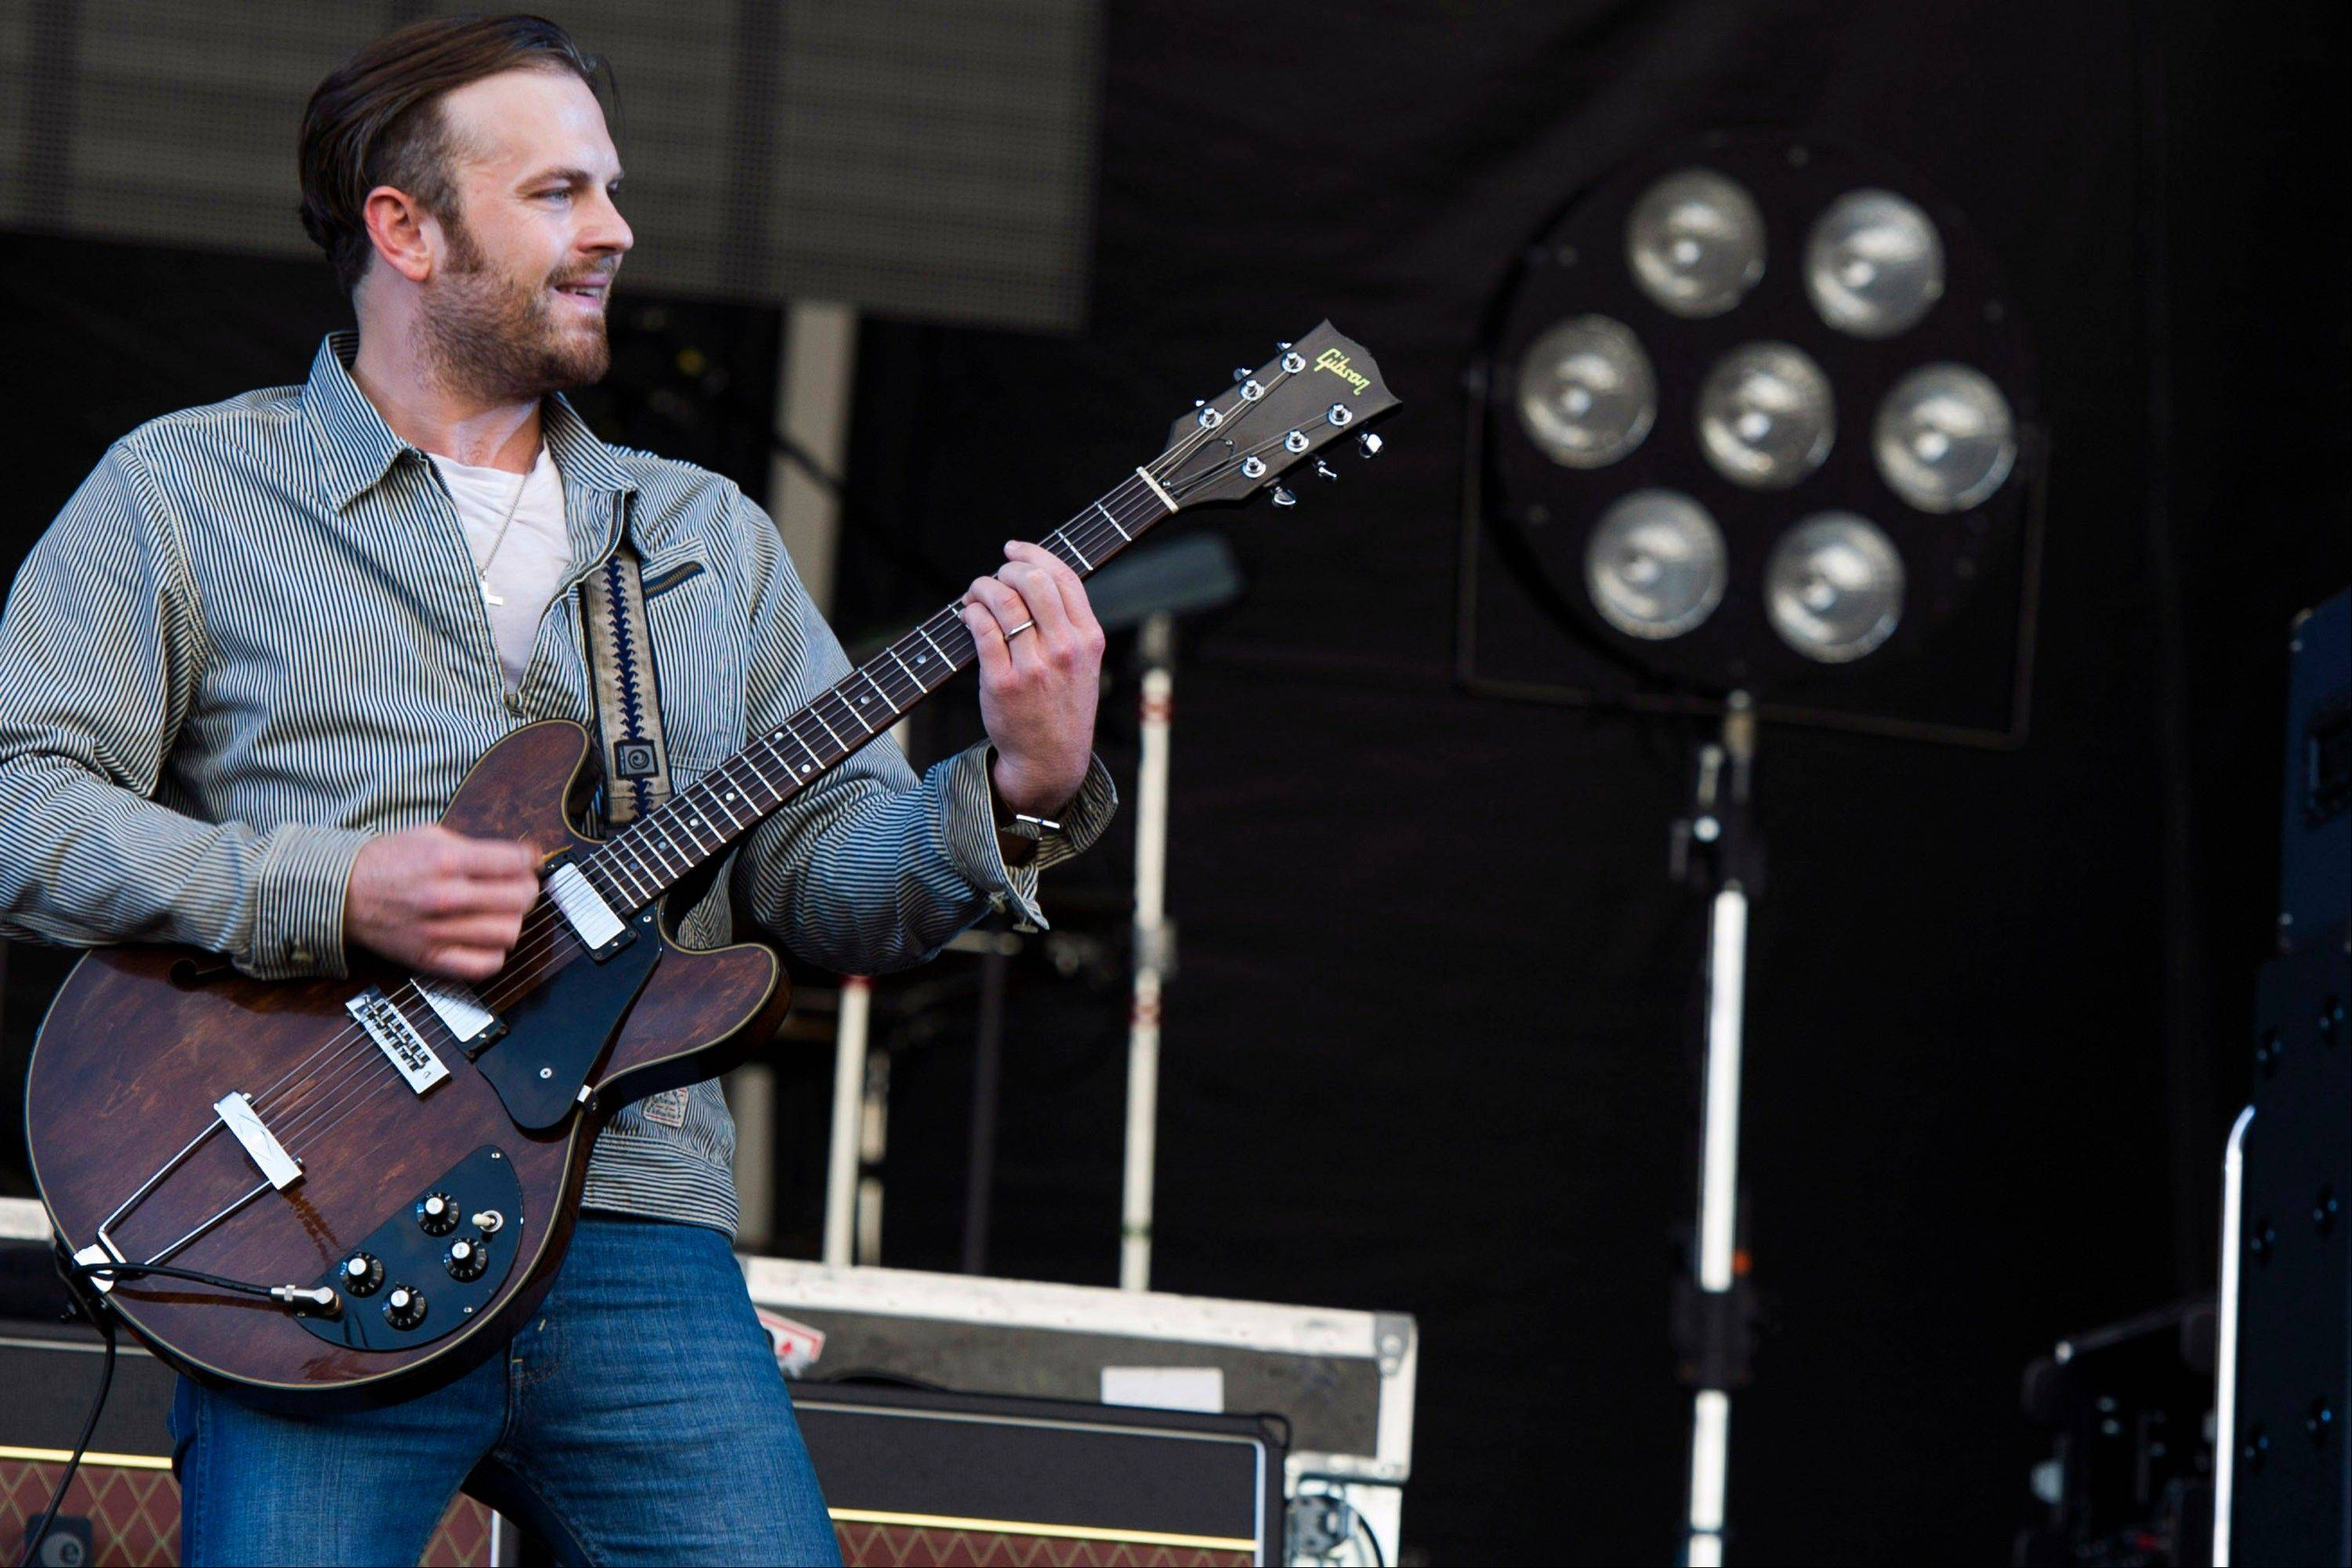 Caleb Followill and Kings of Leon are reaching out to help Oklahoma after a series of tornadoes killed dozens of people last spring with a benefit concert in Oklahoma City featuring The Flaming Lips, Jackson Browne and Built to Spill.